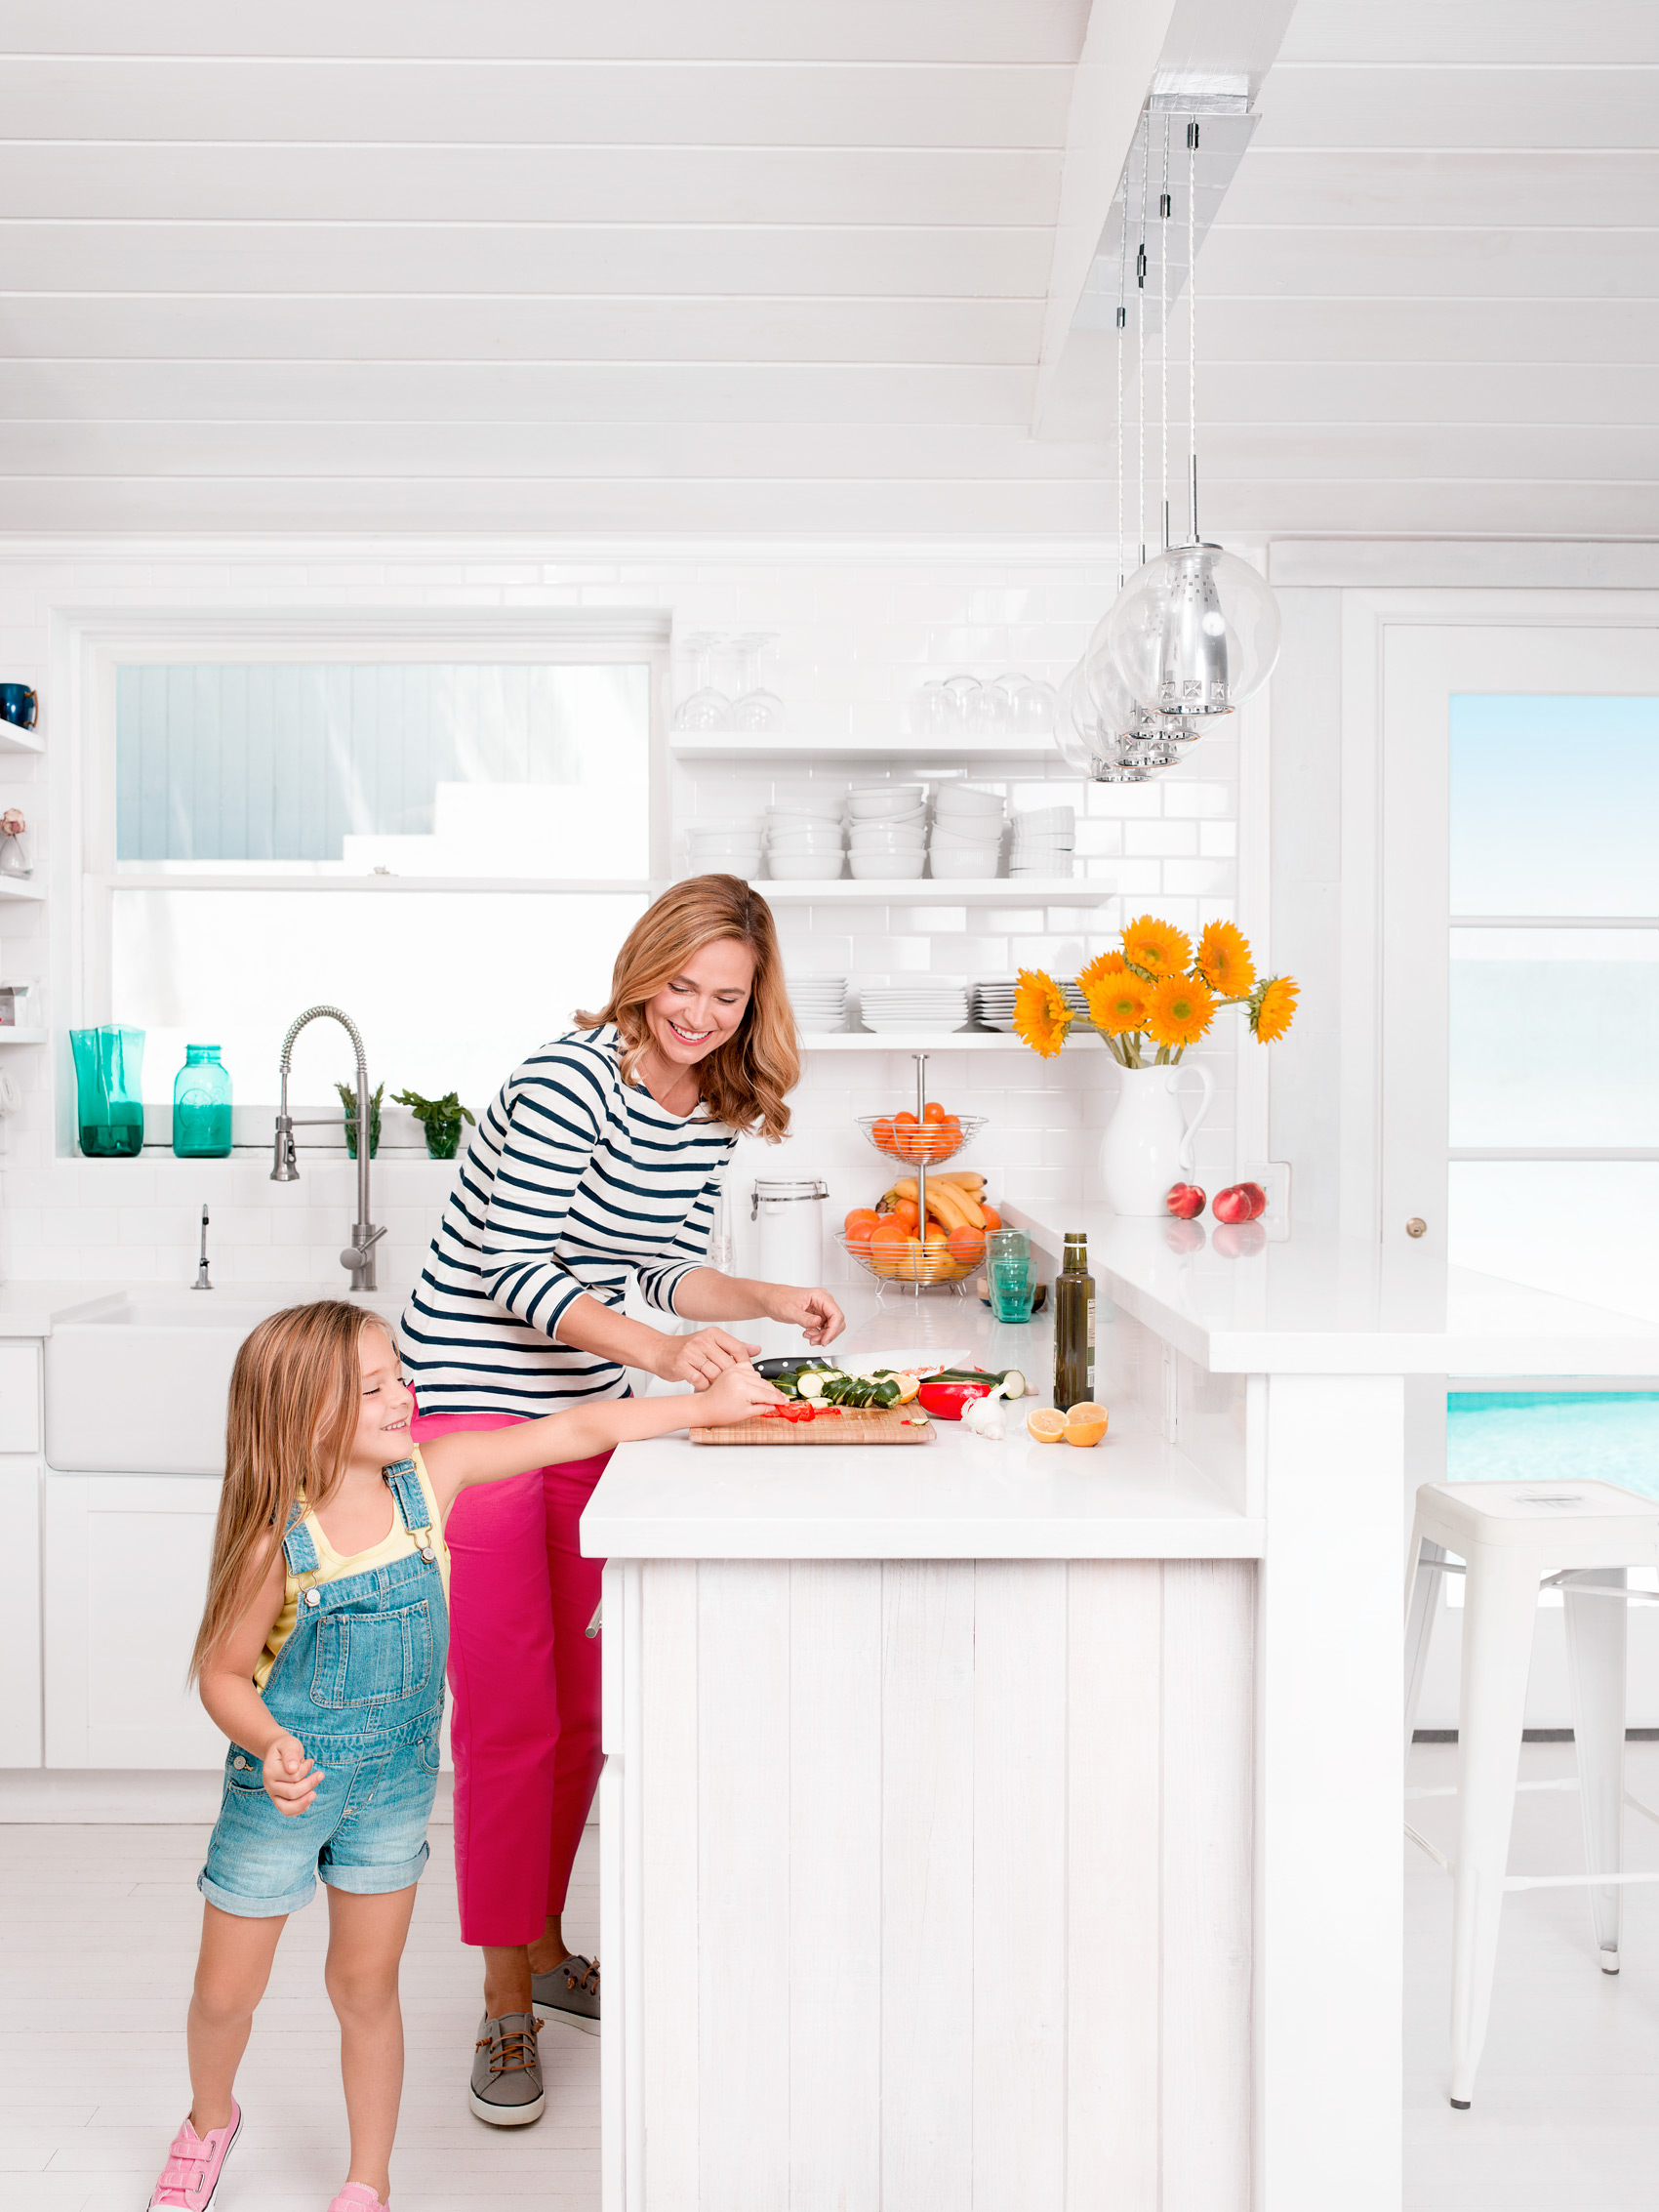 Daughter trying to sneak food while cooking with mom - Kimberly Genevieve Los Angeles Lifestyle Advertising Photographer